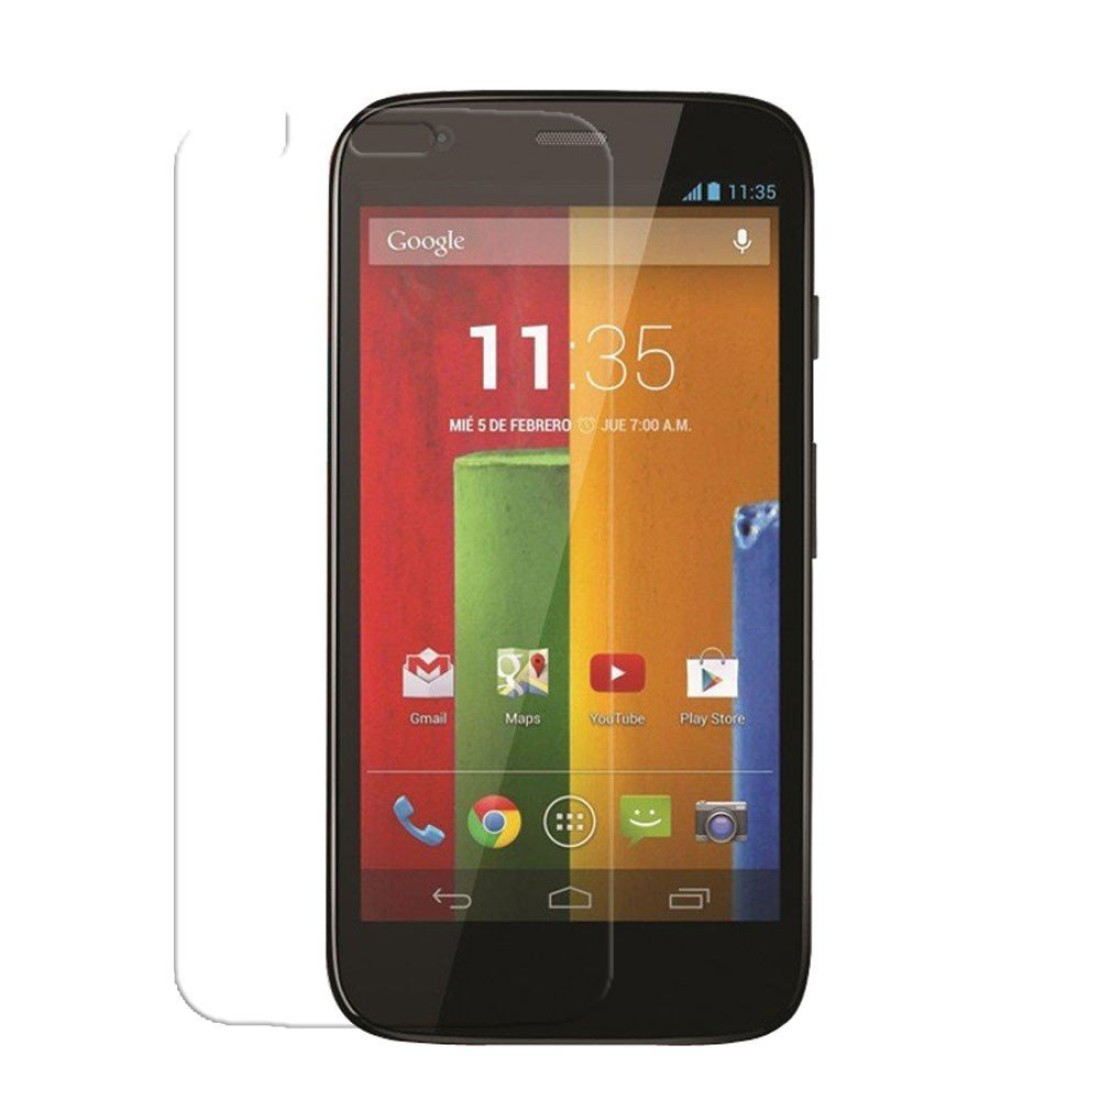 Protector G XT1068 Tempered Glass for Motorola Moto G (2nd gen)